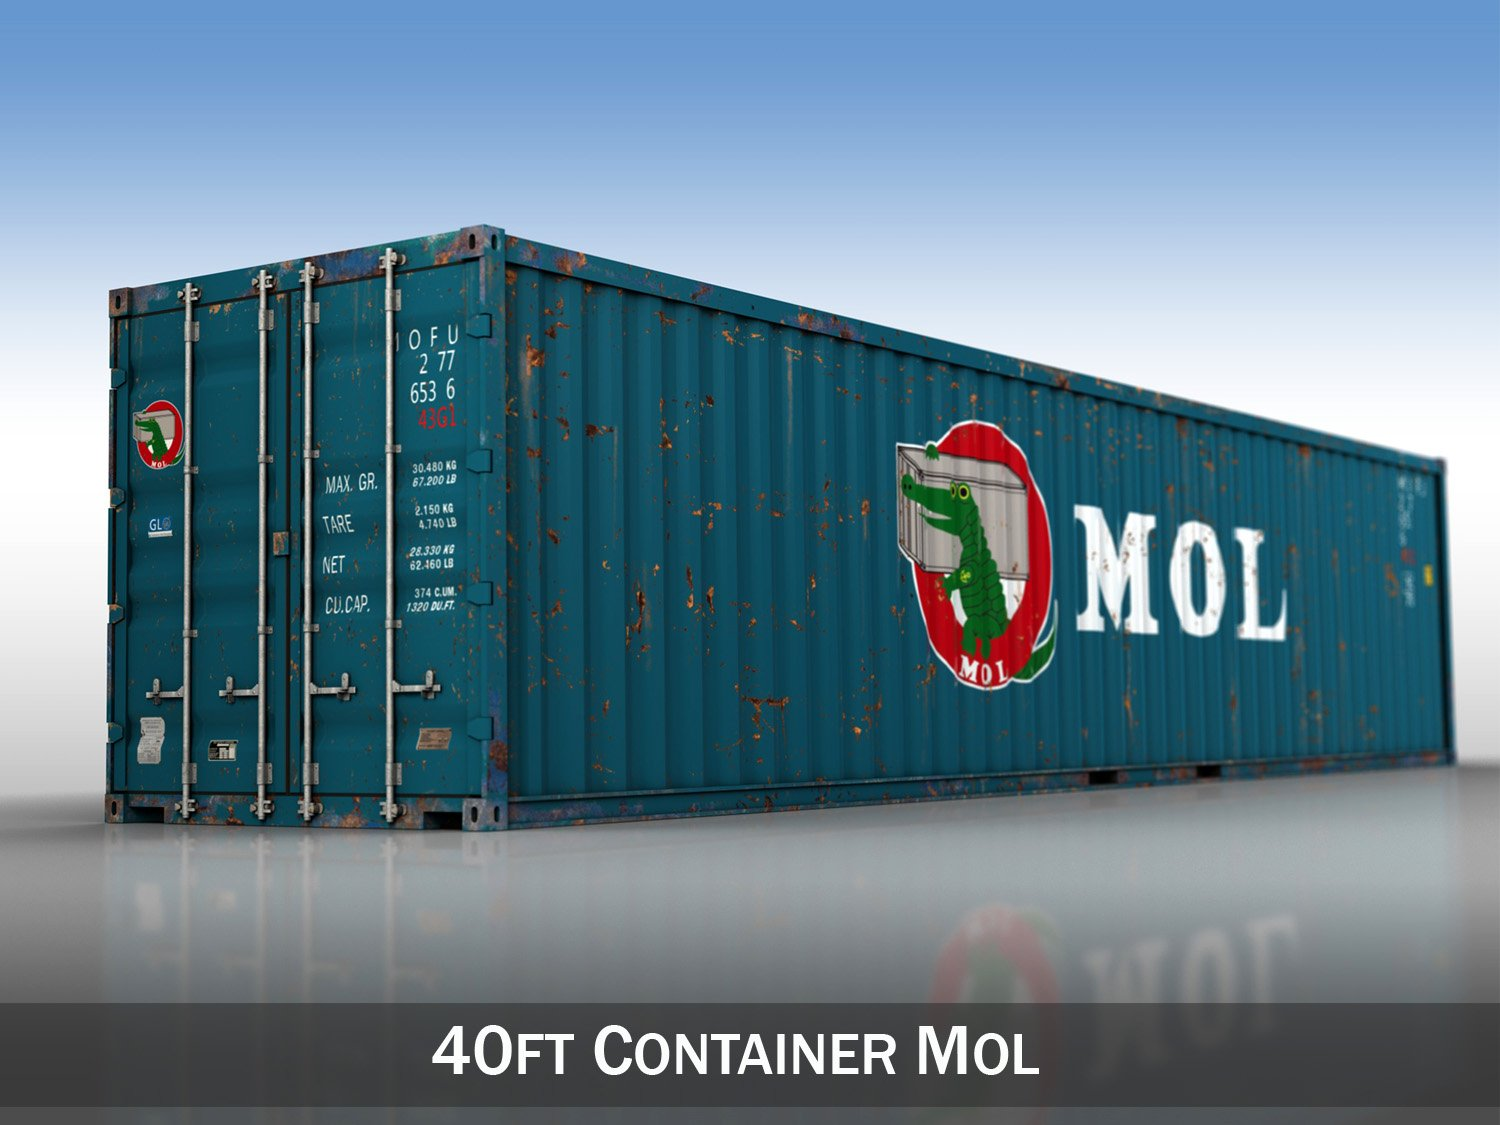 40ft Shipping Container >> 40ft Shipping Container Mol 3d Model In Shipping Containers 3dexport